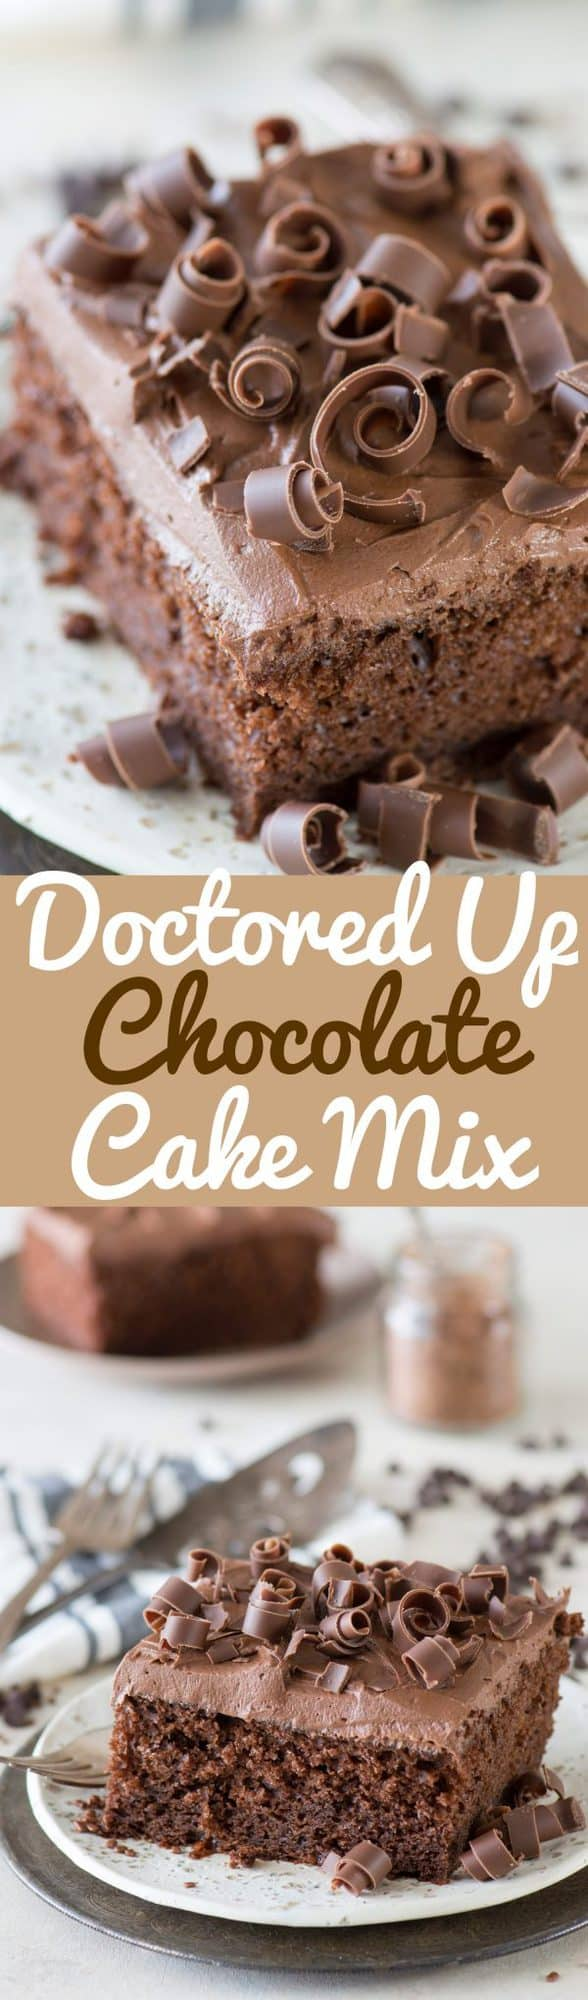 Doctored up chocolate cake with chocolate curls